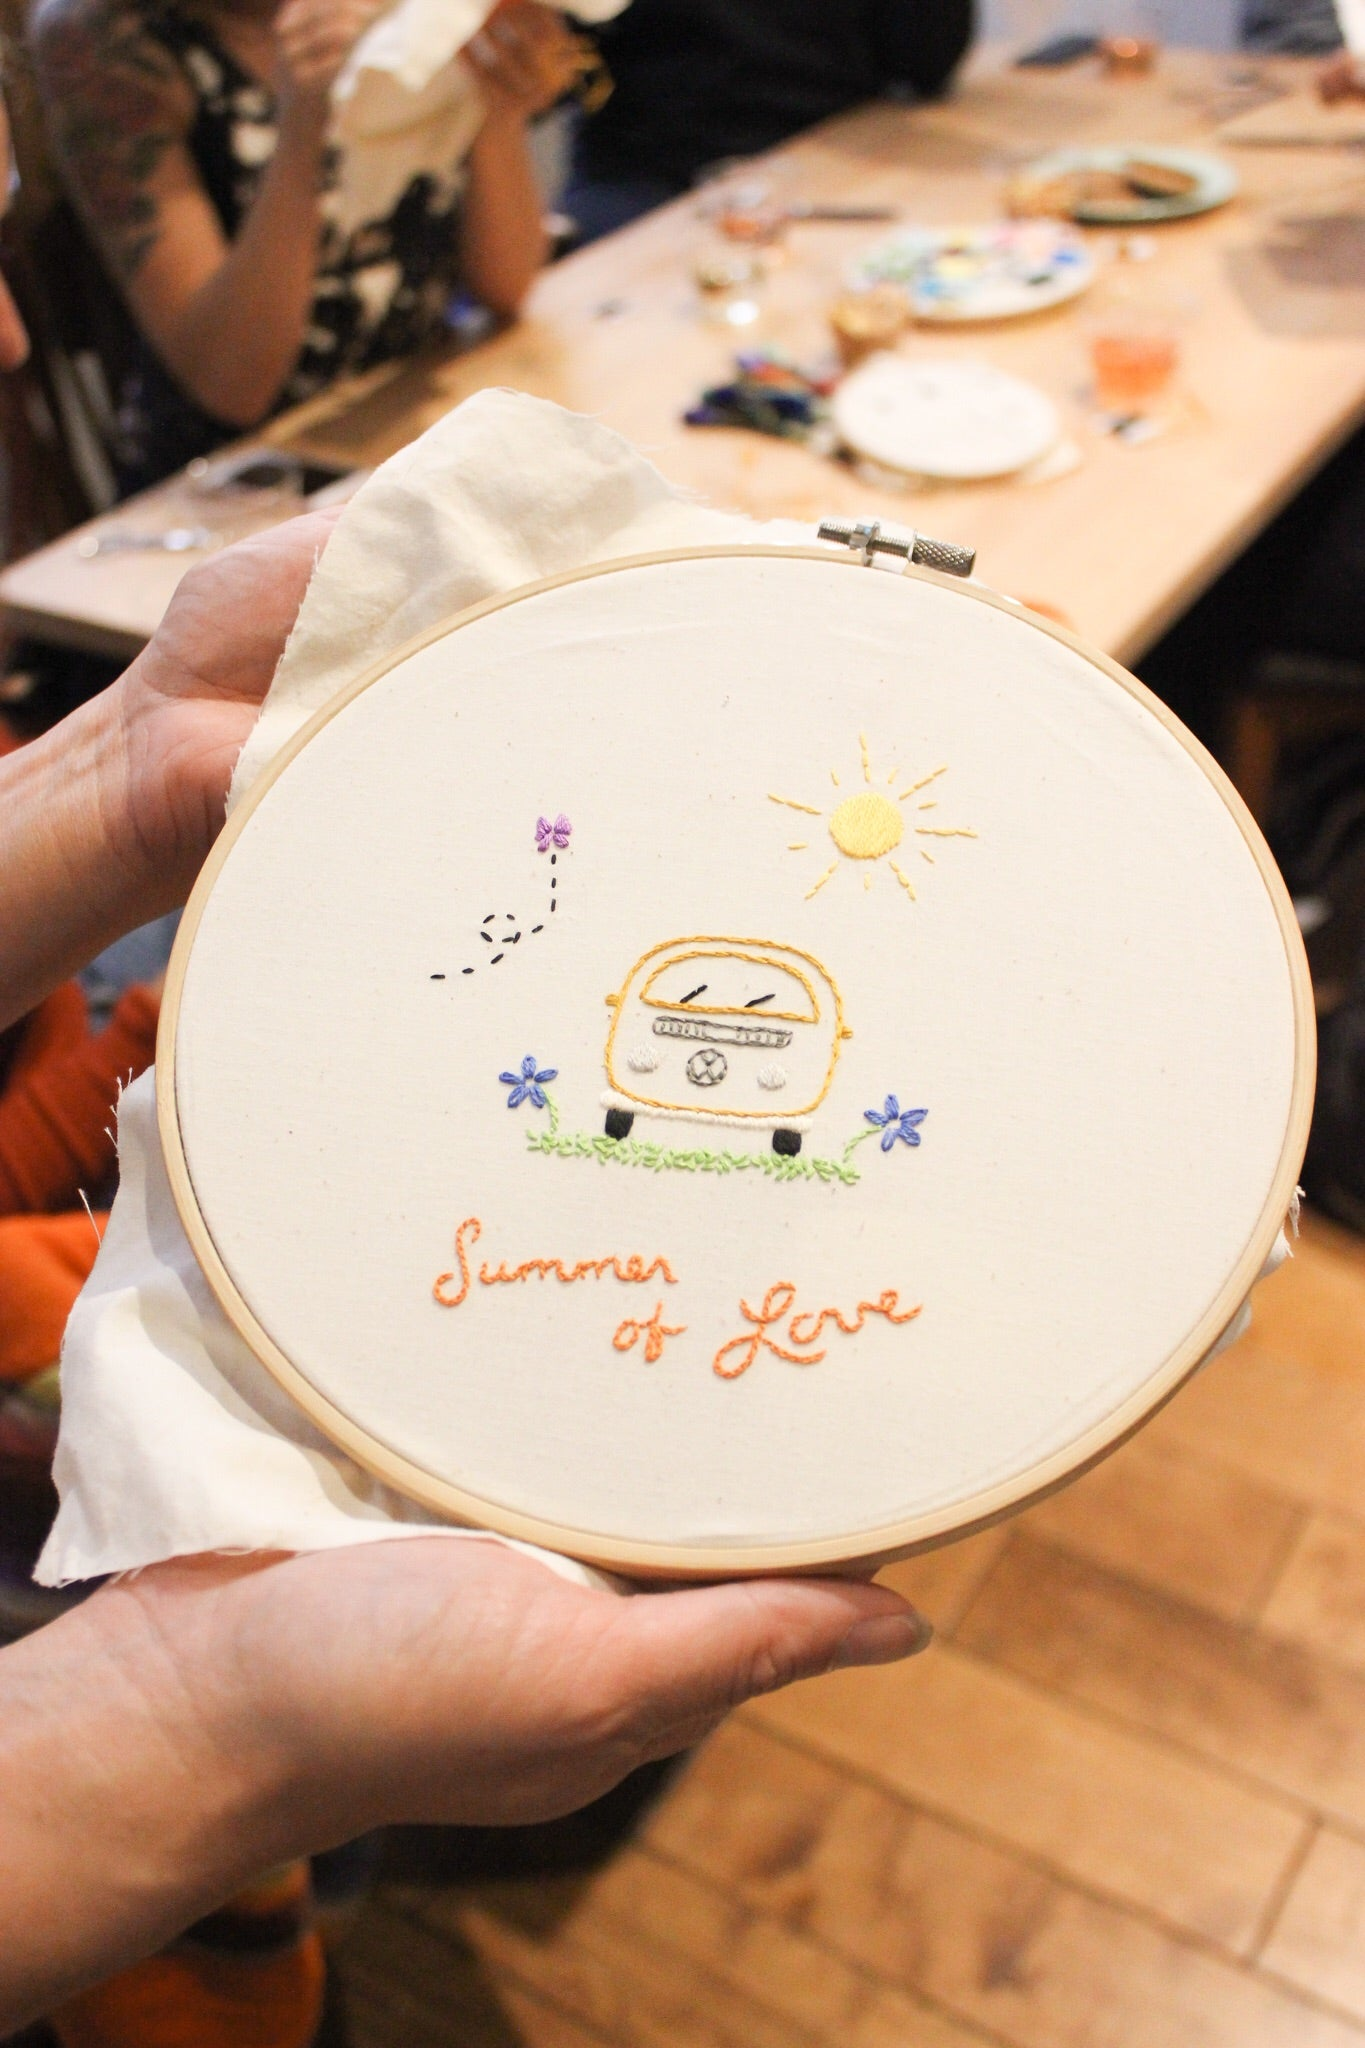 Beginning Hand Embroidery Workshop: Monday, 5/14